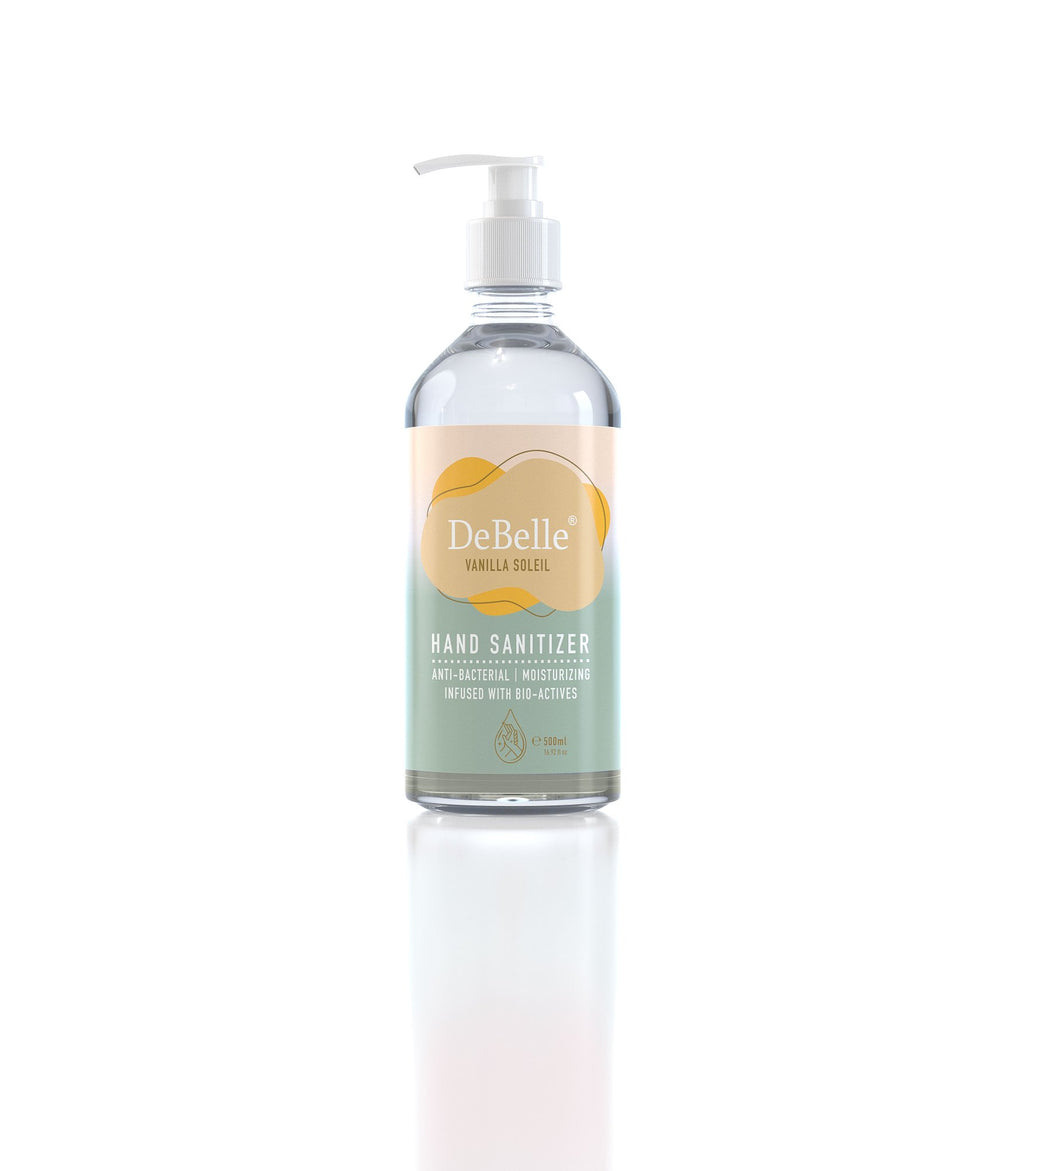 DeBelle hand sanitizer - vanillasoleil  | Best hand sanitizer in India online